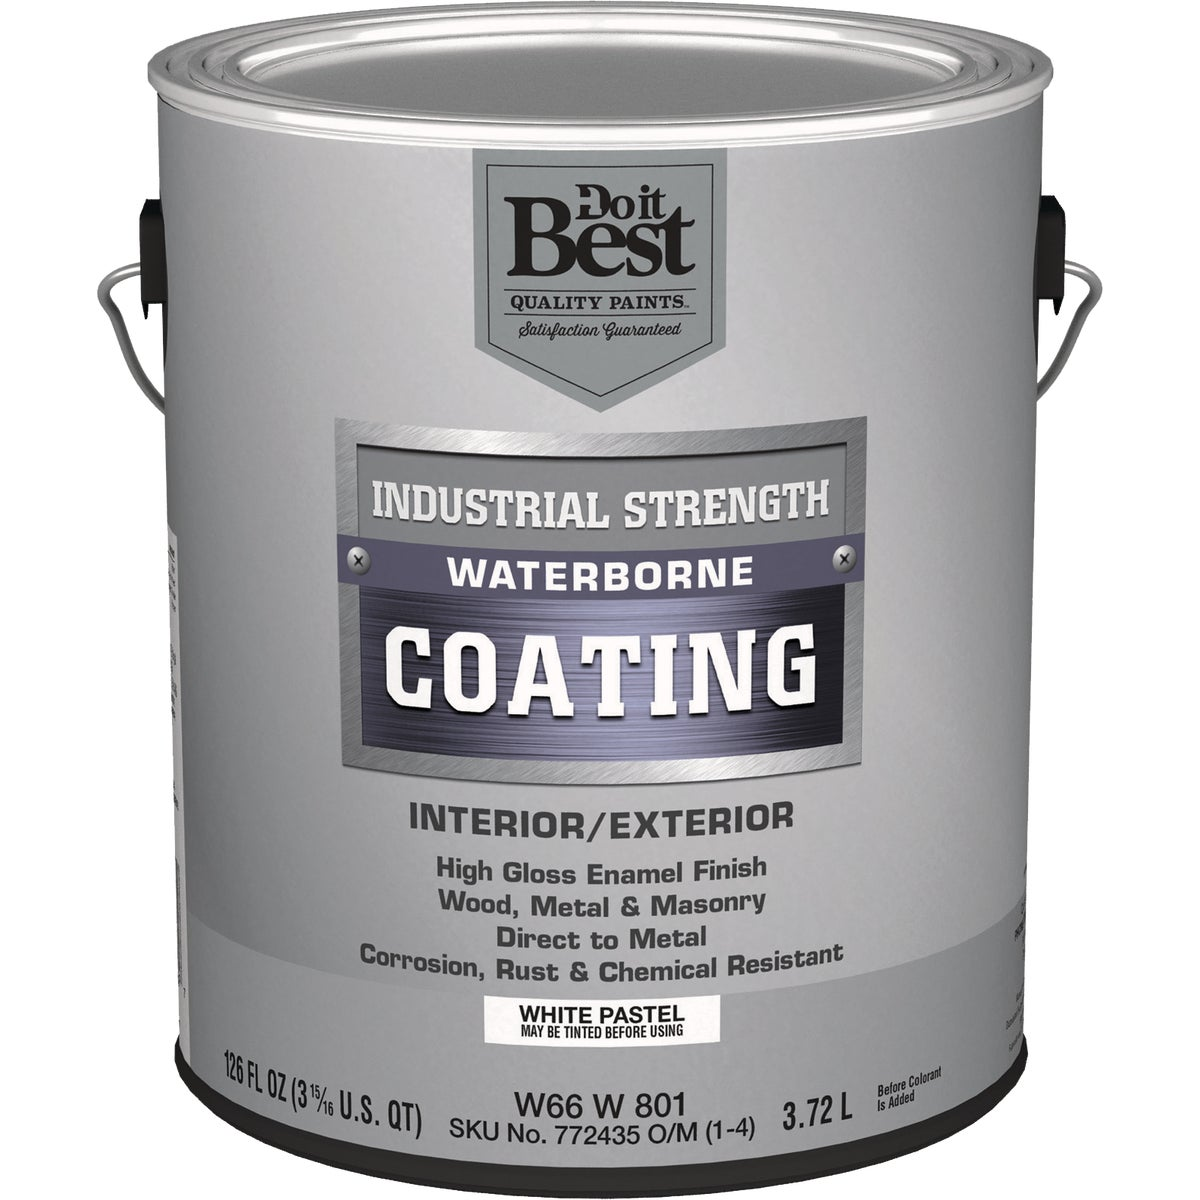 GLS PSTL/WHT LATEX PAINT - W66W00801-16 by Do it Best